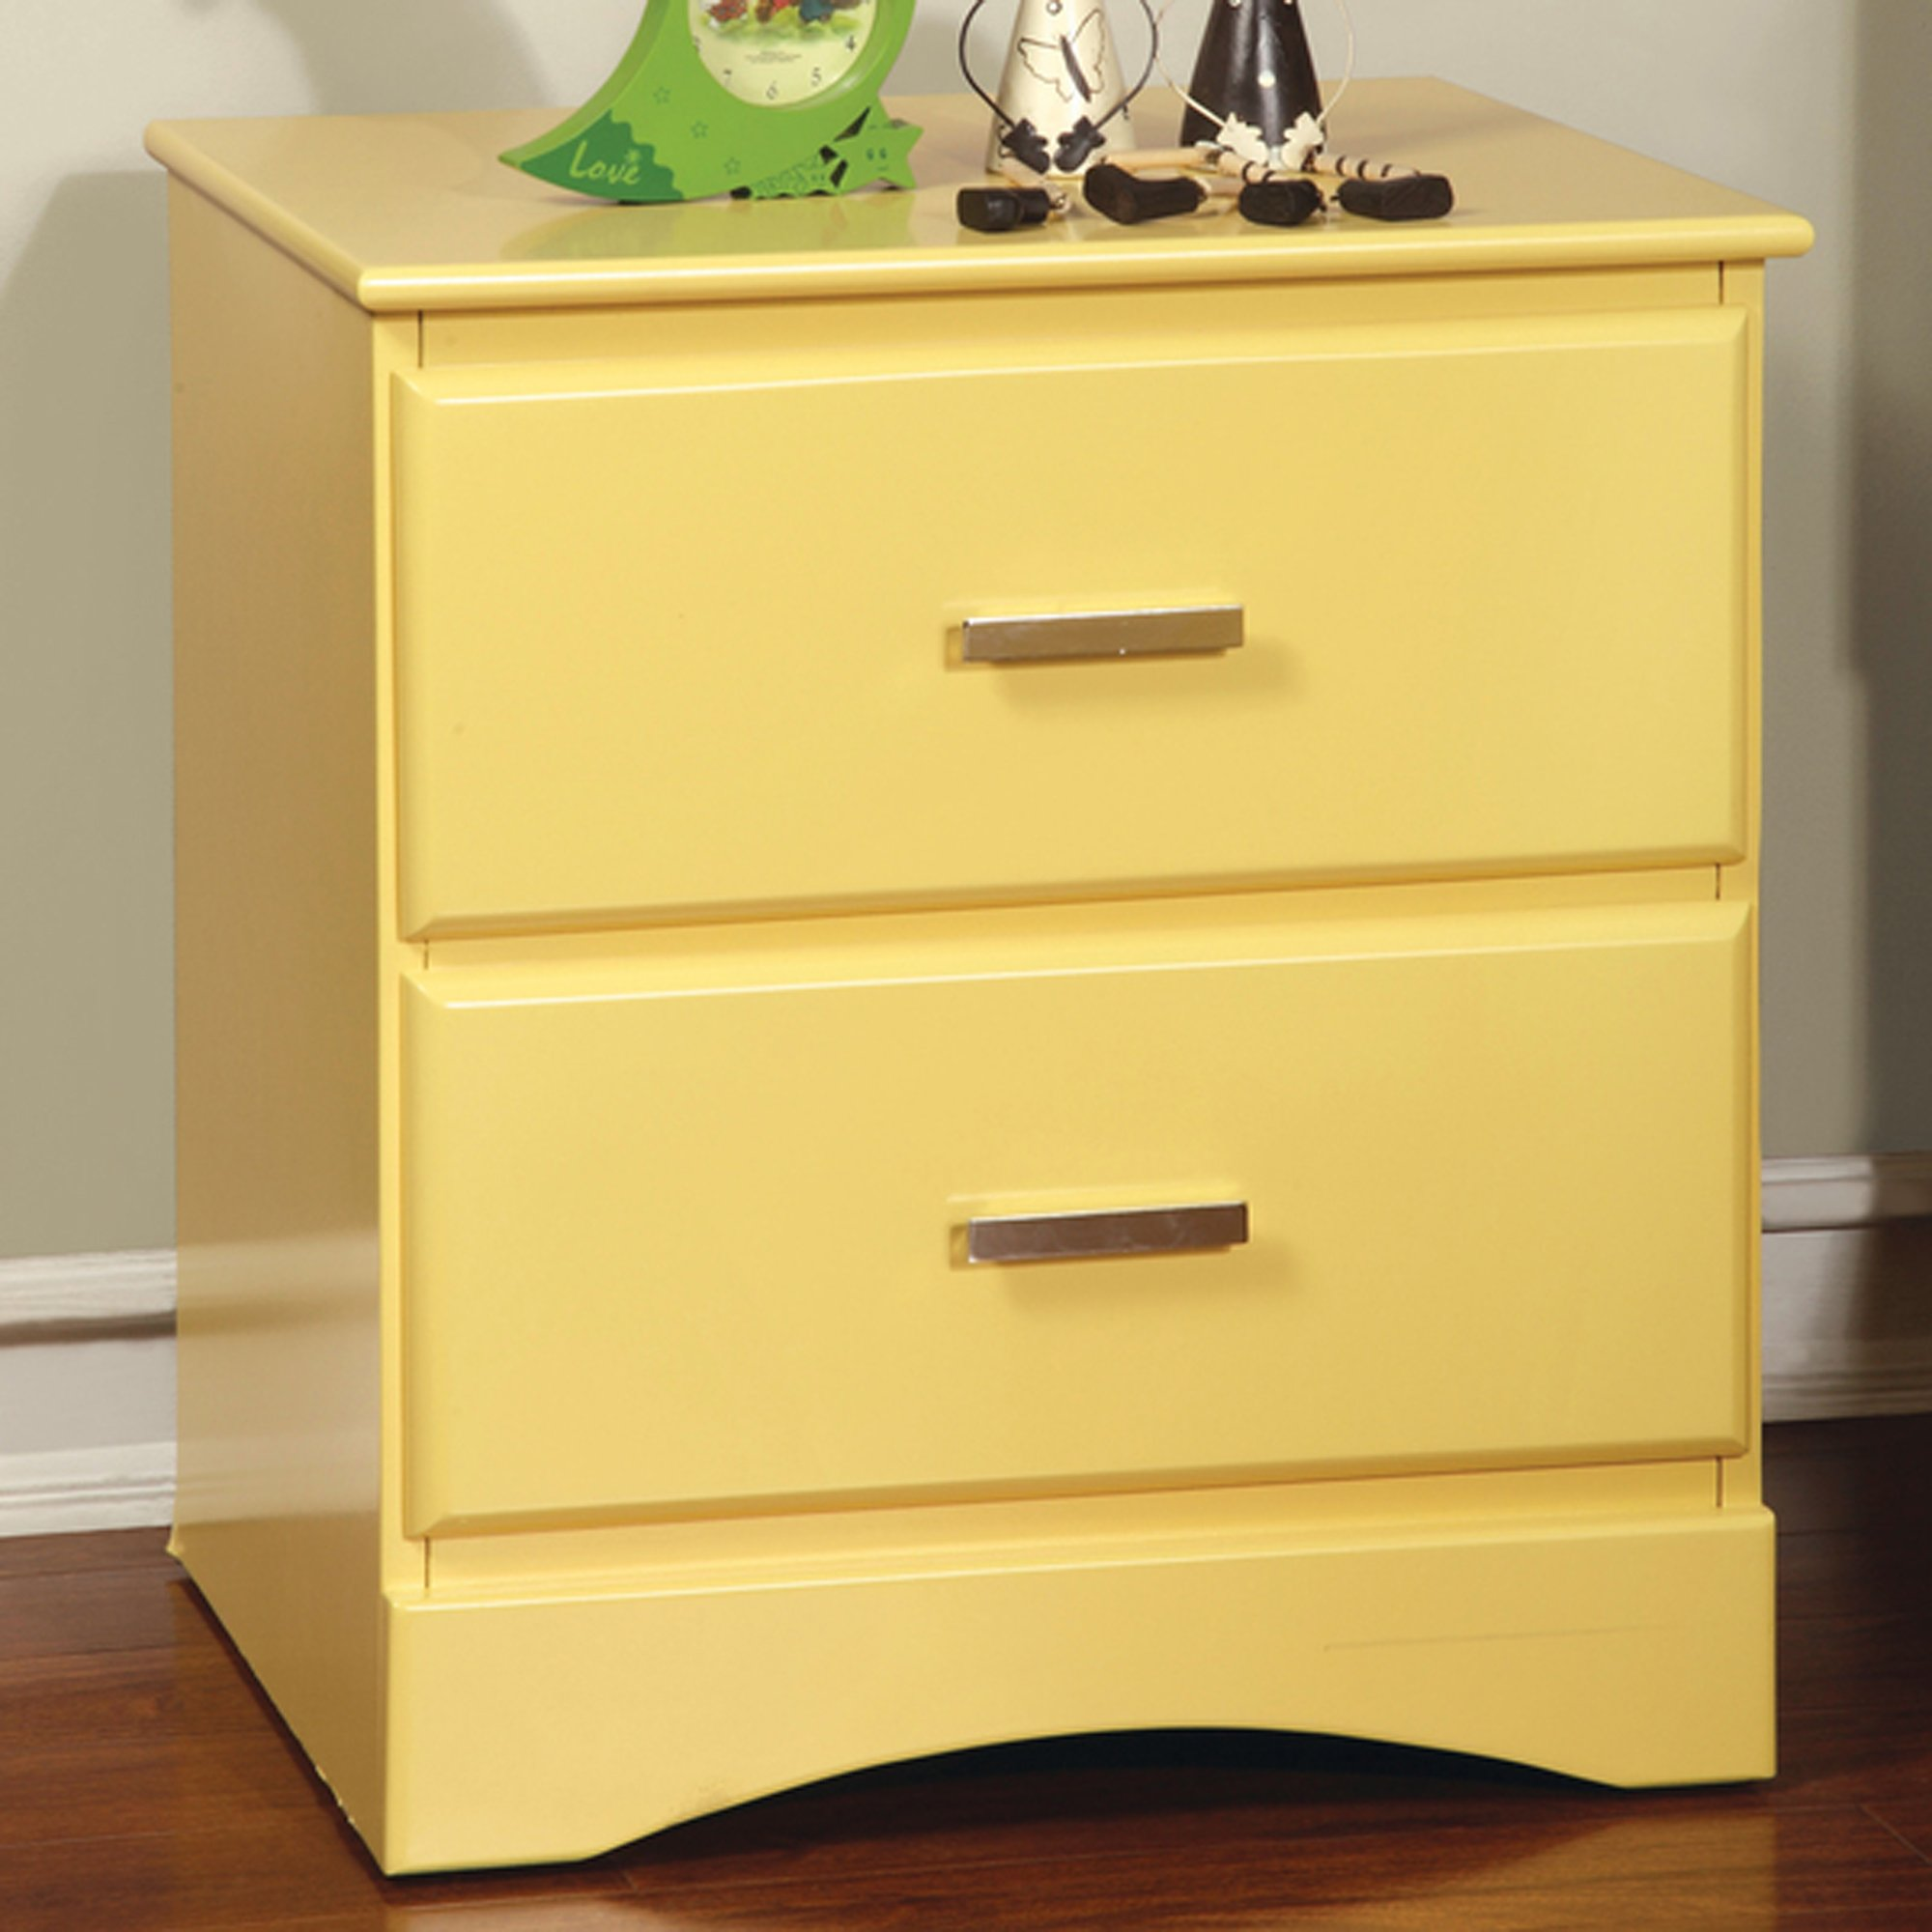 Kids Nightstand with 2 Drawers, Modern Toddler Room Side Table in Accent Color (Pineapple)